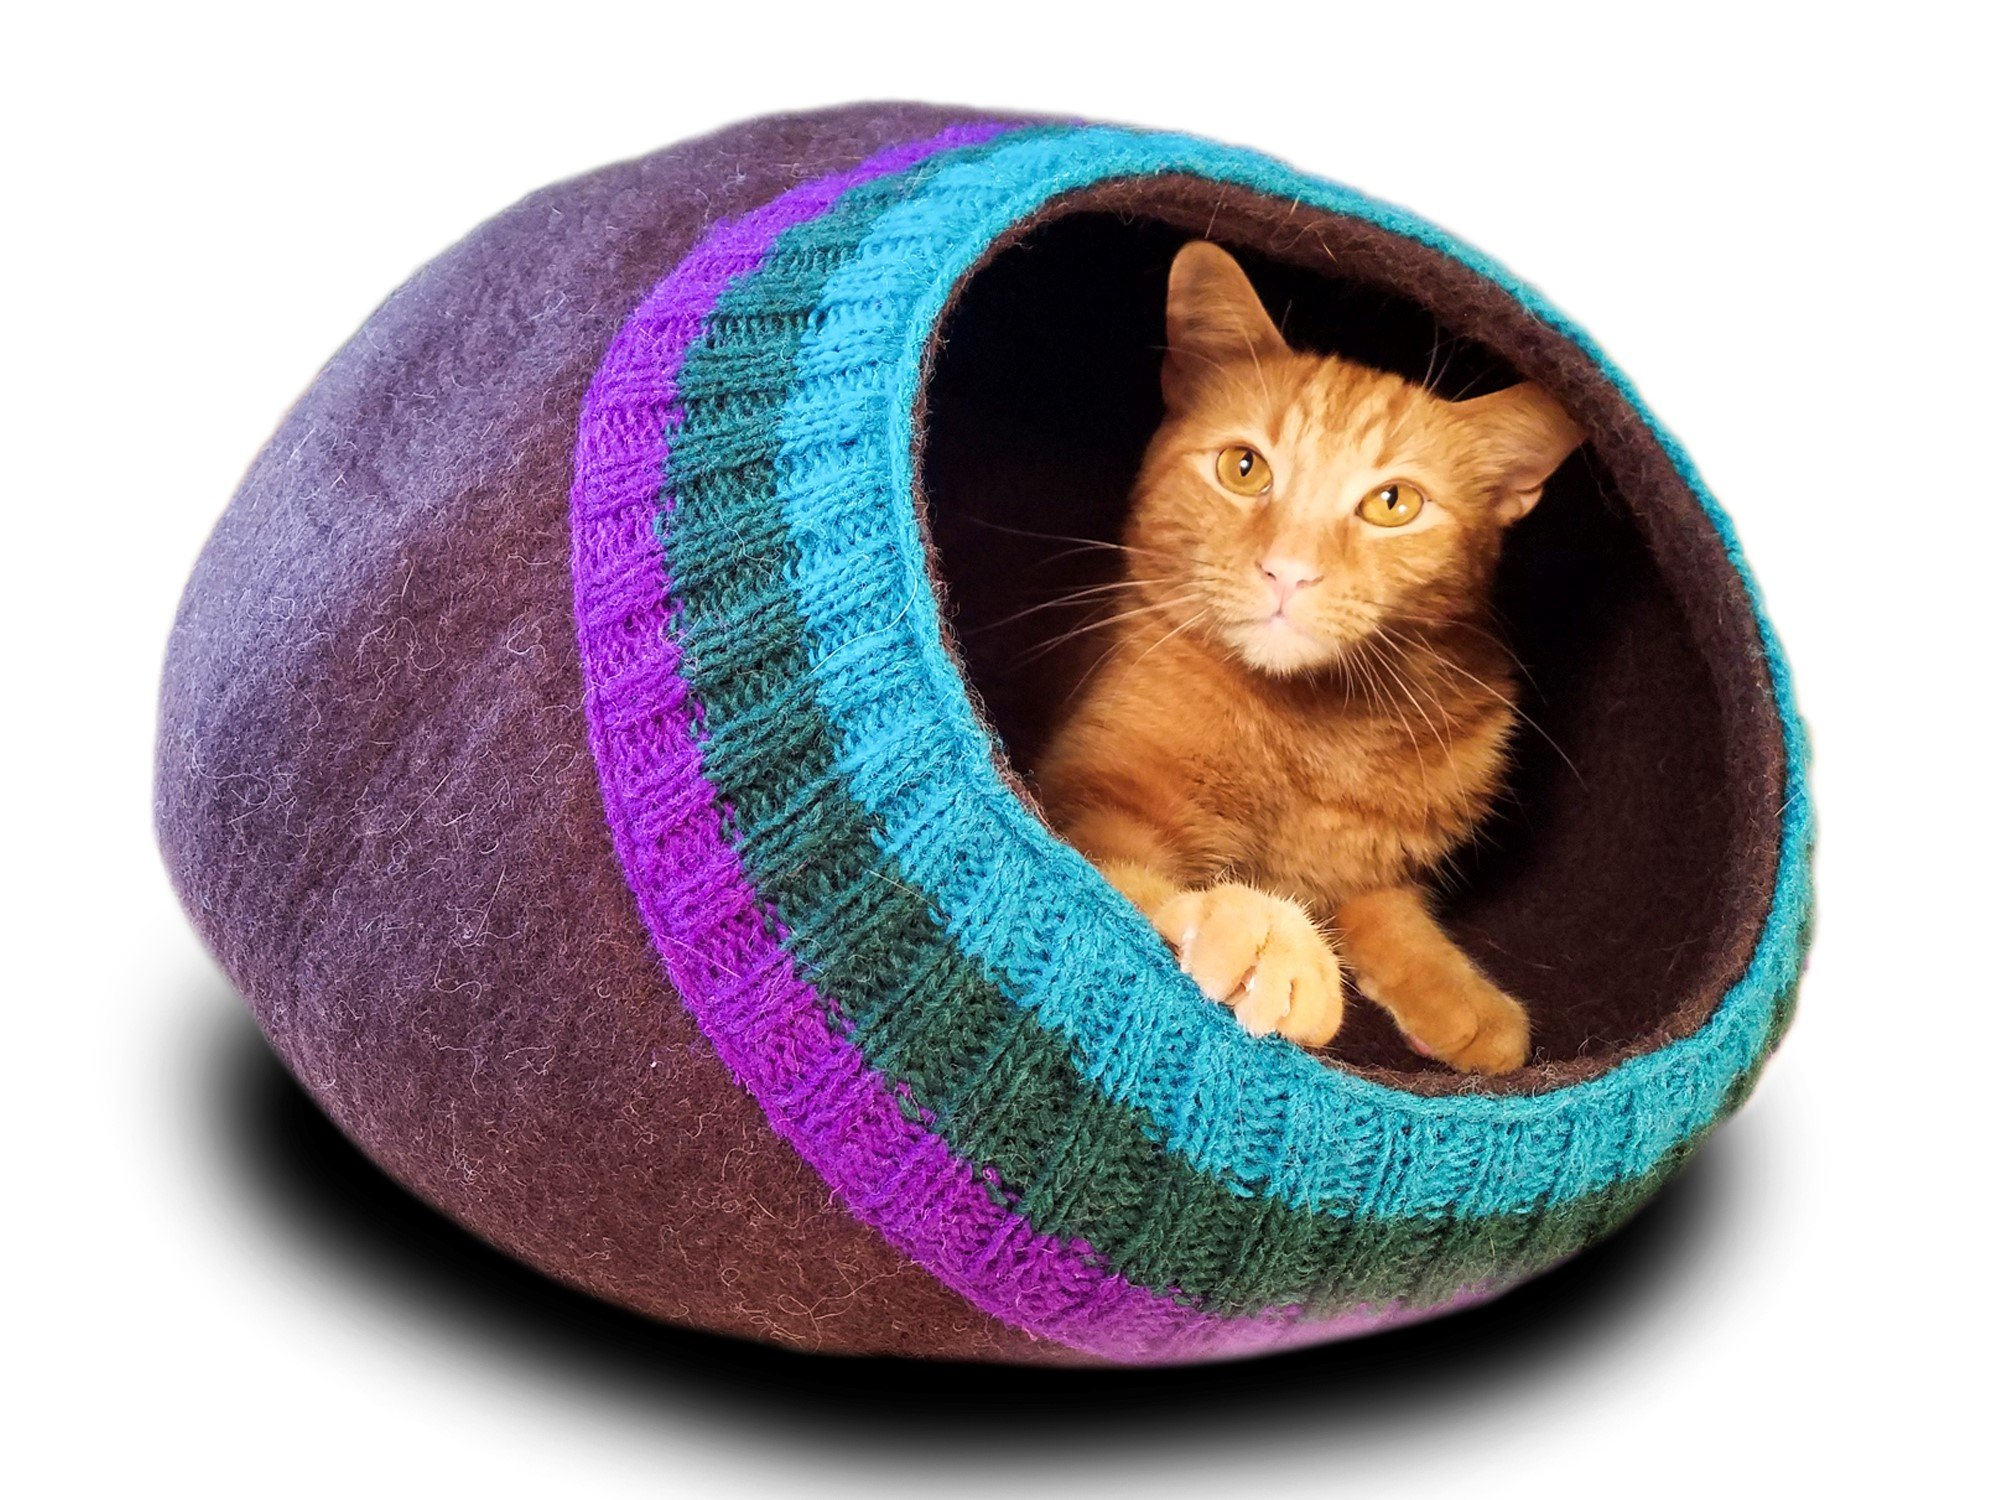 Meowfia Premium Felt Cat Cave (Large) - Eco-Friendly 100% Merino Wool Cat Bed - Soft and Comfy Beds for Large Cats and Kittens (Dark Brown with Knitting)